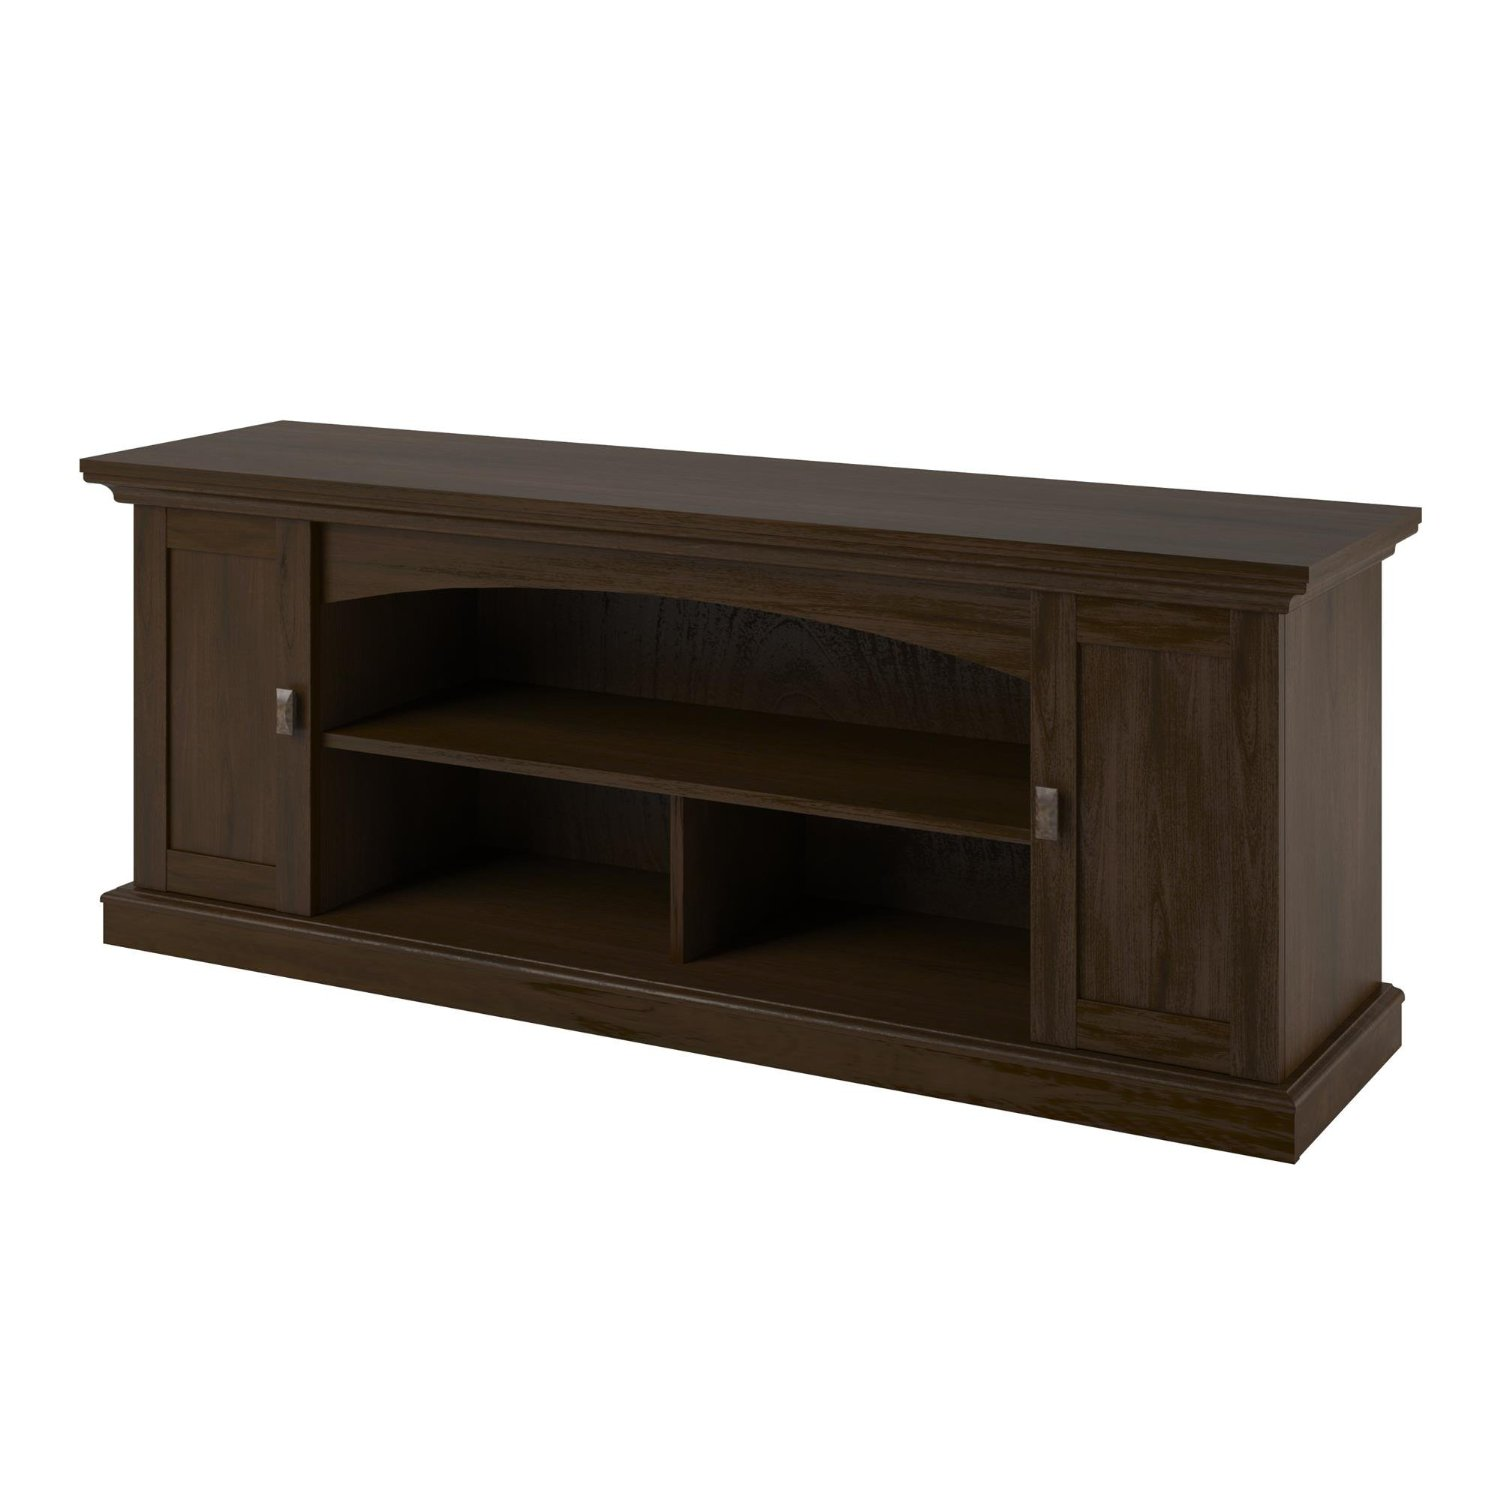 Cheap 60 Tv Stand Ikea Find 60 Tv Stand Ikea Deals On Line At  # Notice Expedit Ikea